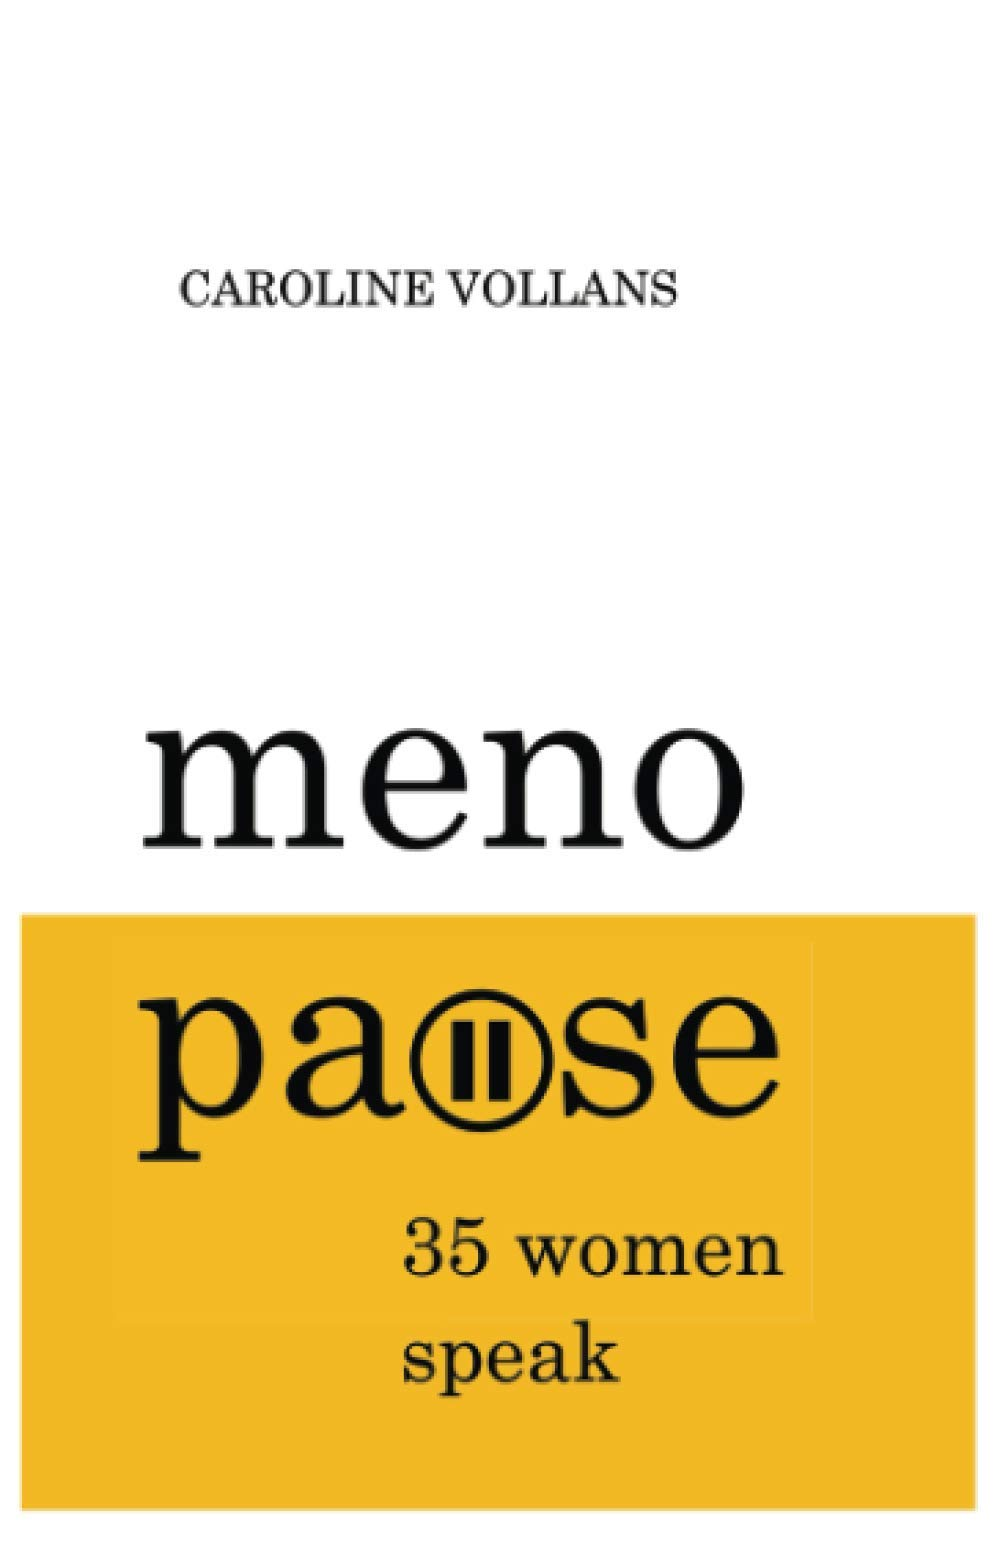 Menopause by Caroline Vollans book cover